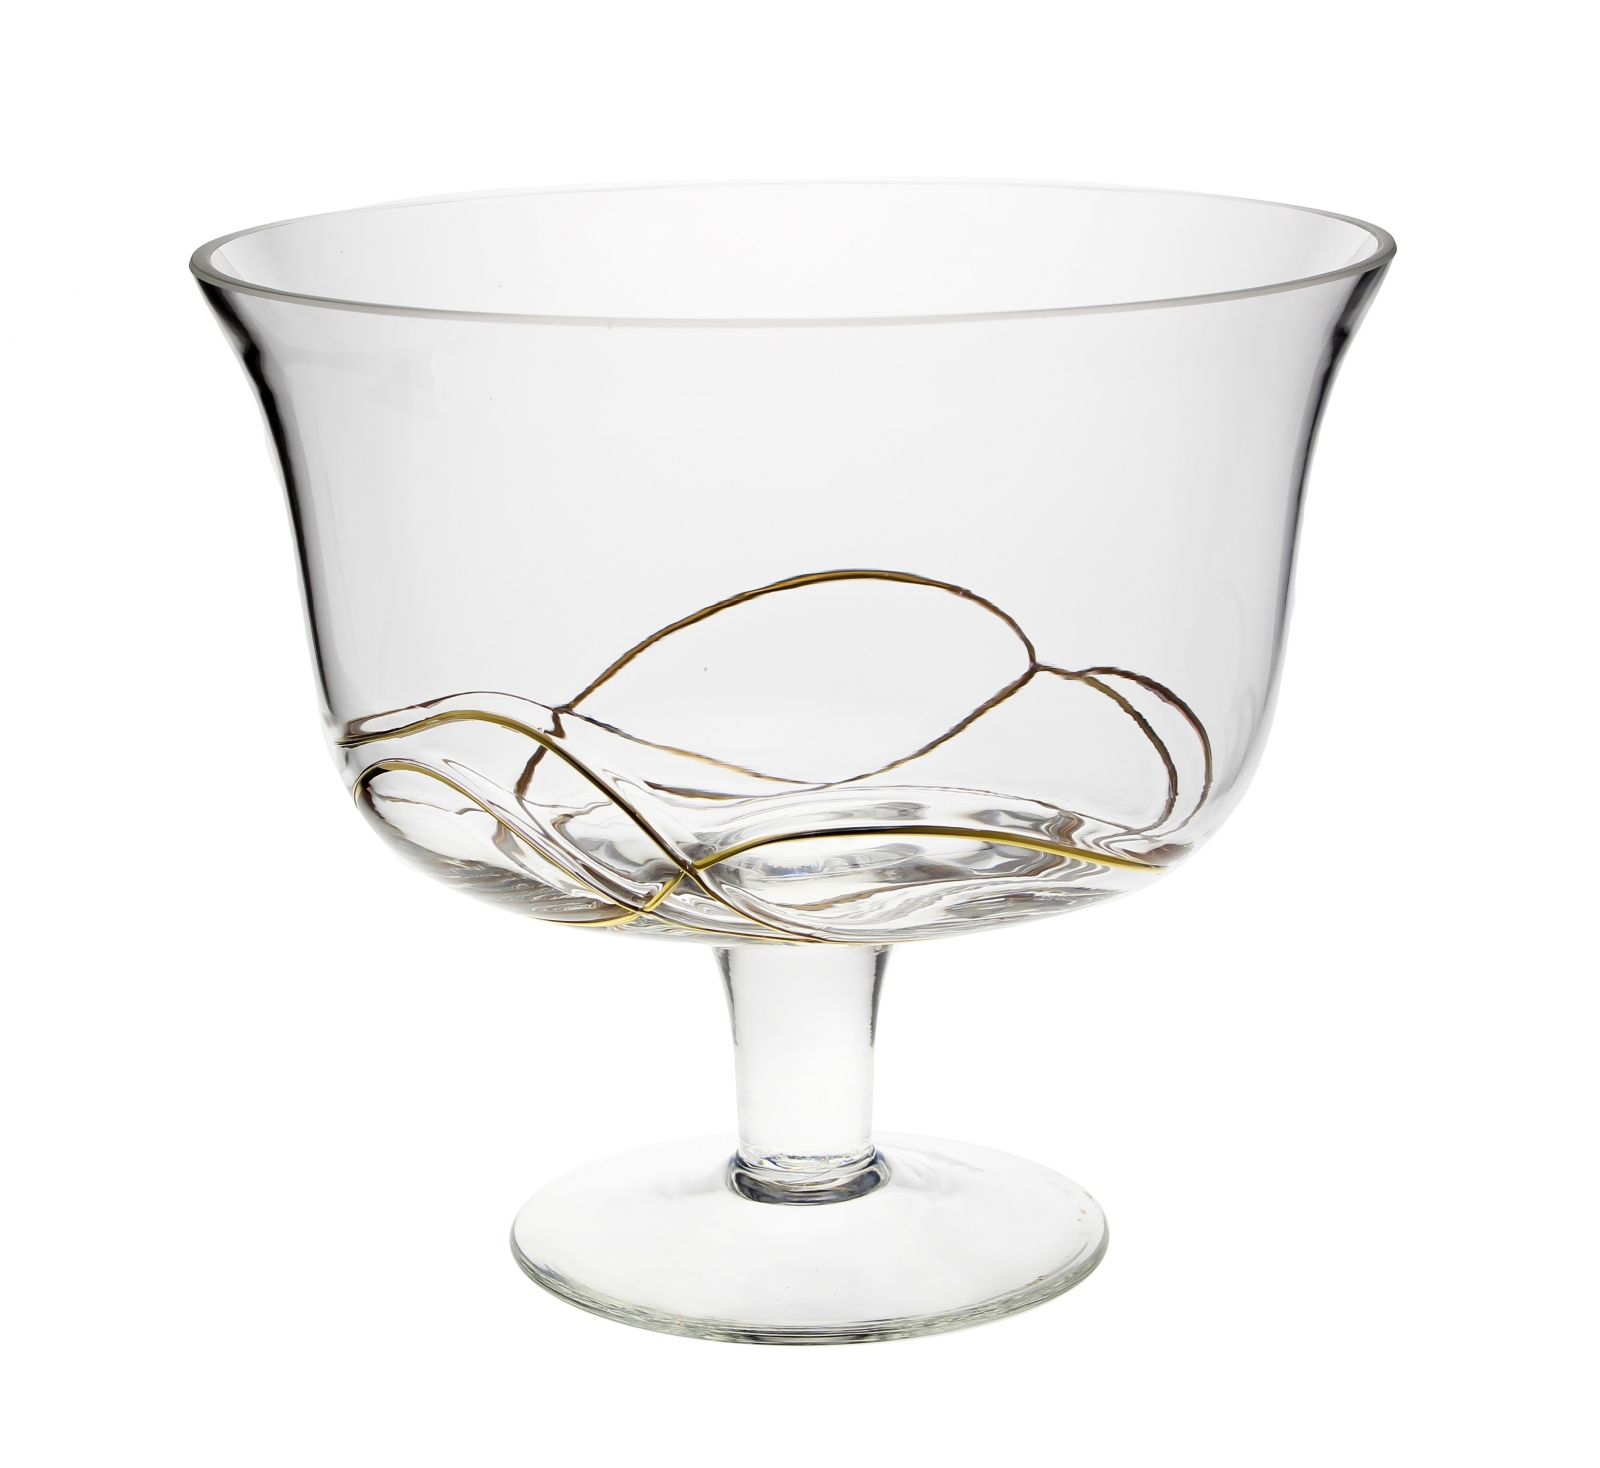 Footed Bowl with Gold Swirl Design